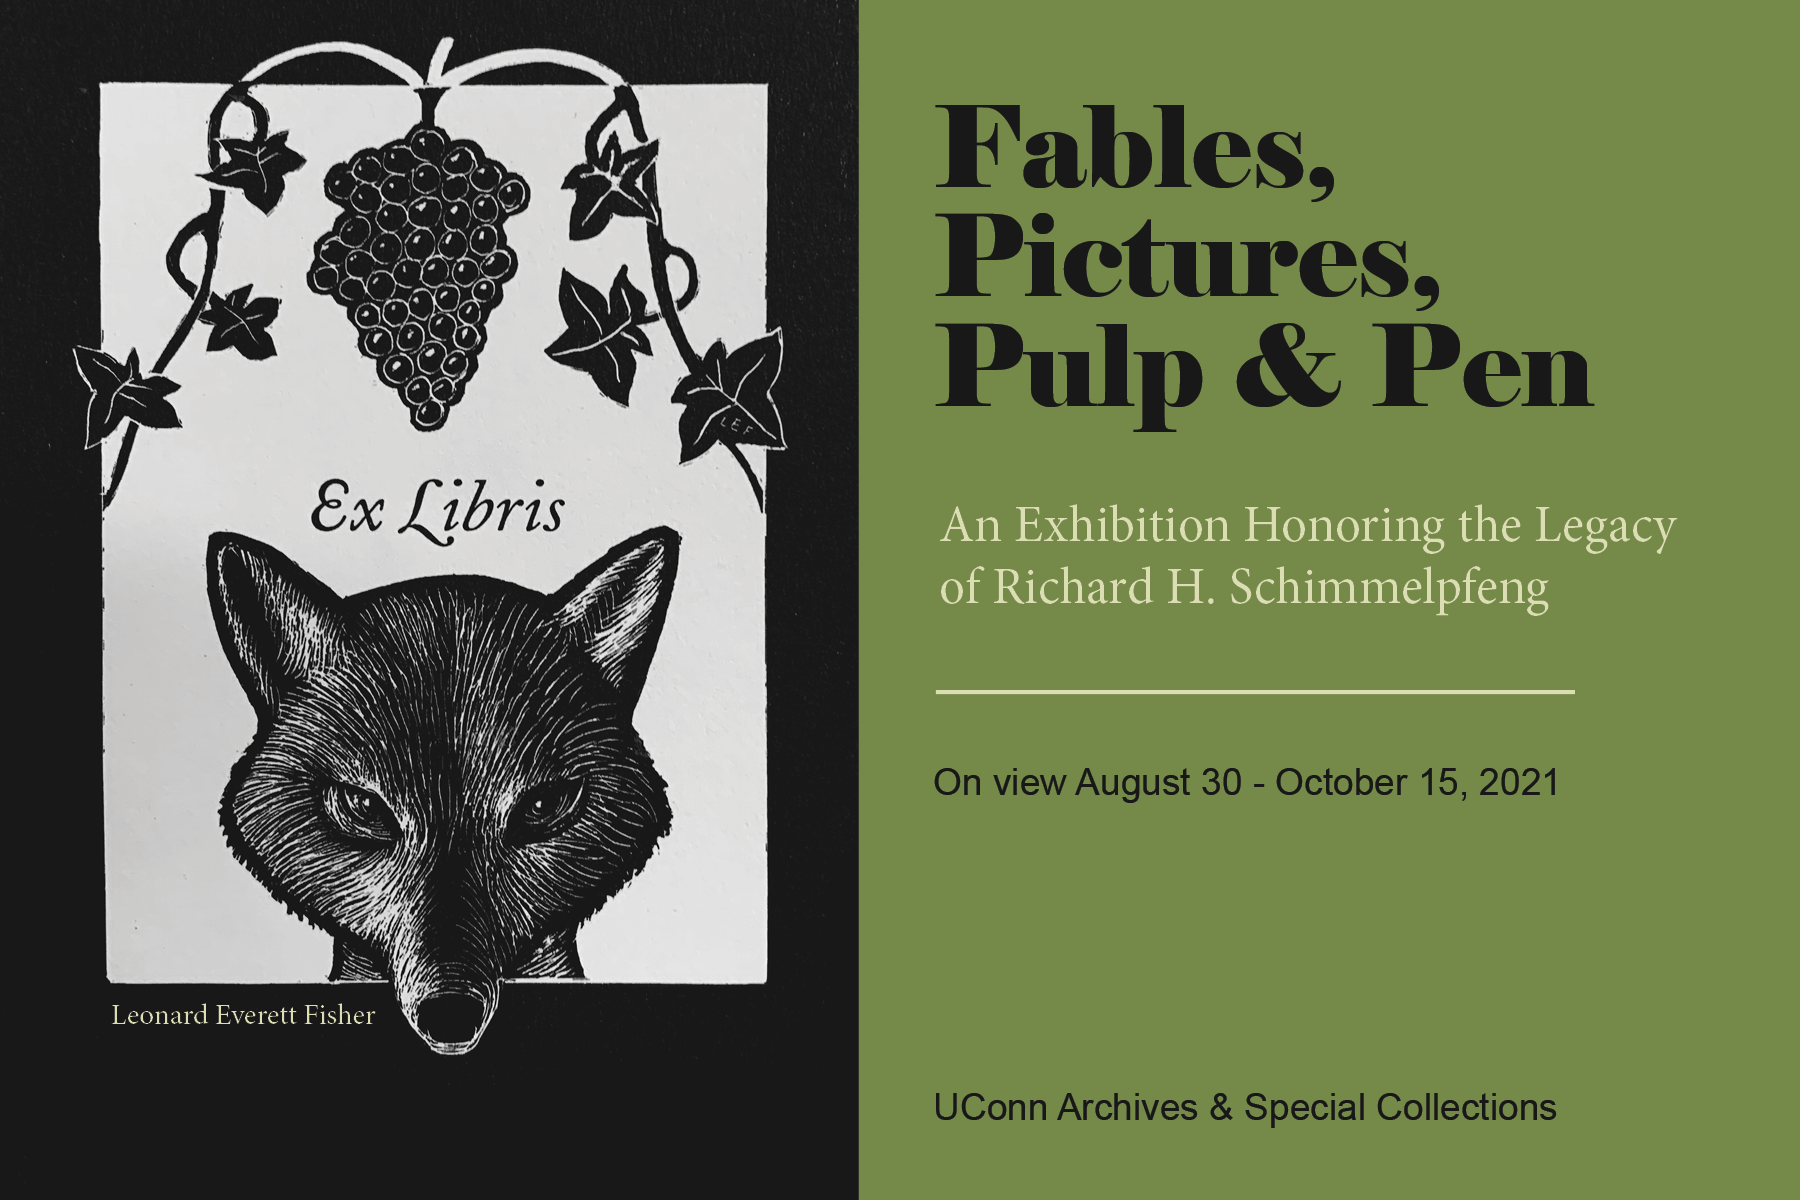 Image of a book plate with grapes and fox reads Ex Libris, credit to Leonard Everett Fisher. Text beside image: Fables, Pictures, Pulp & Pen, An exhibition Honoring the Legacy of Richard H. Schimmelpfeng. On view August 30 - October 15, 2021. UConn Archives & Special Collections.